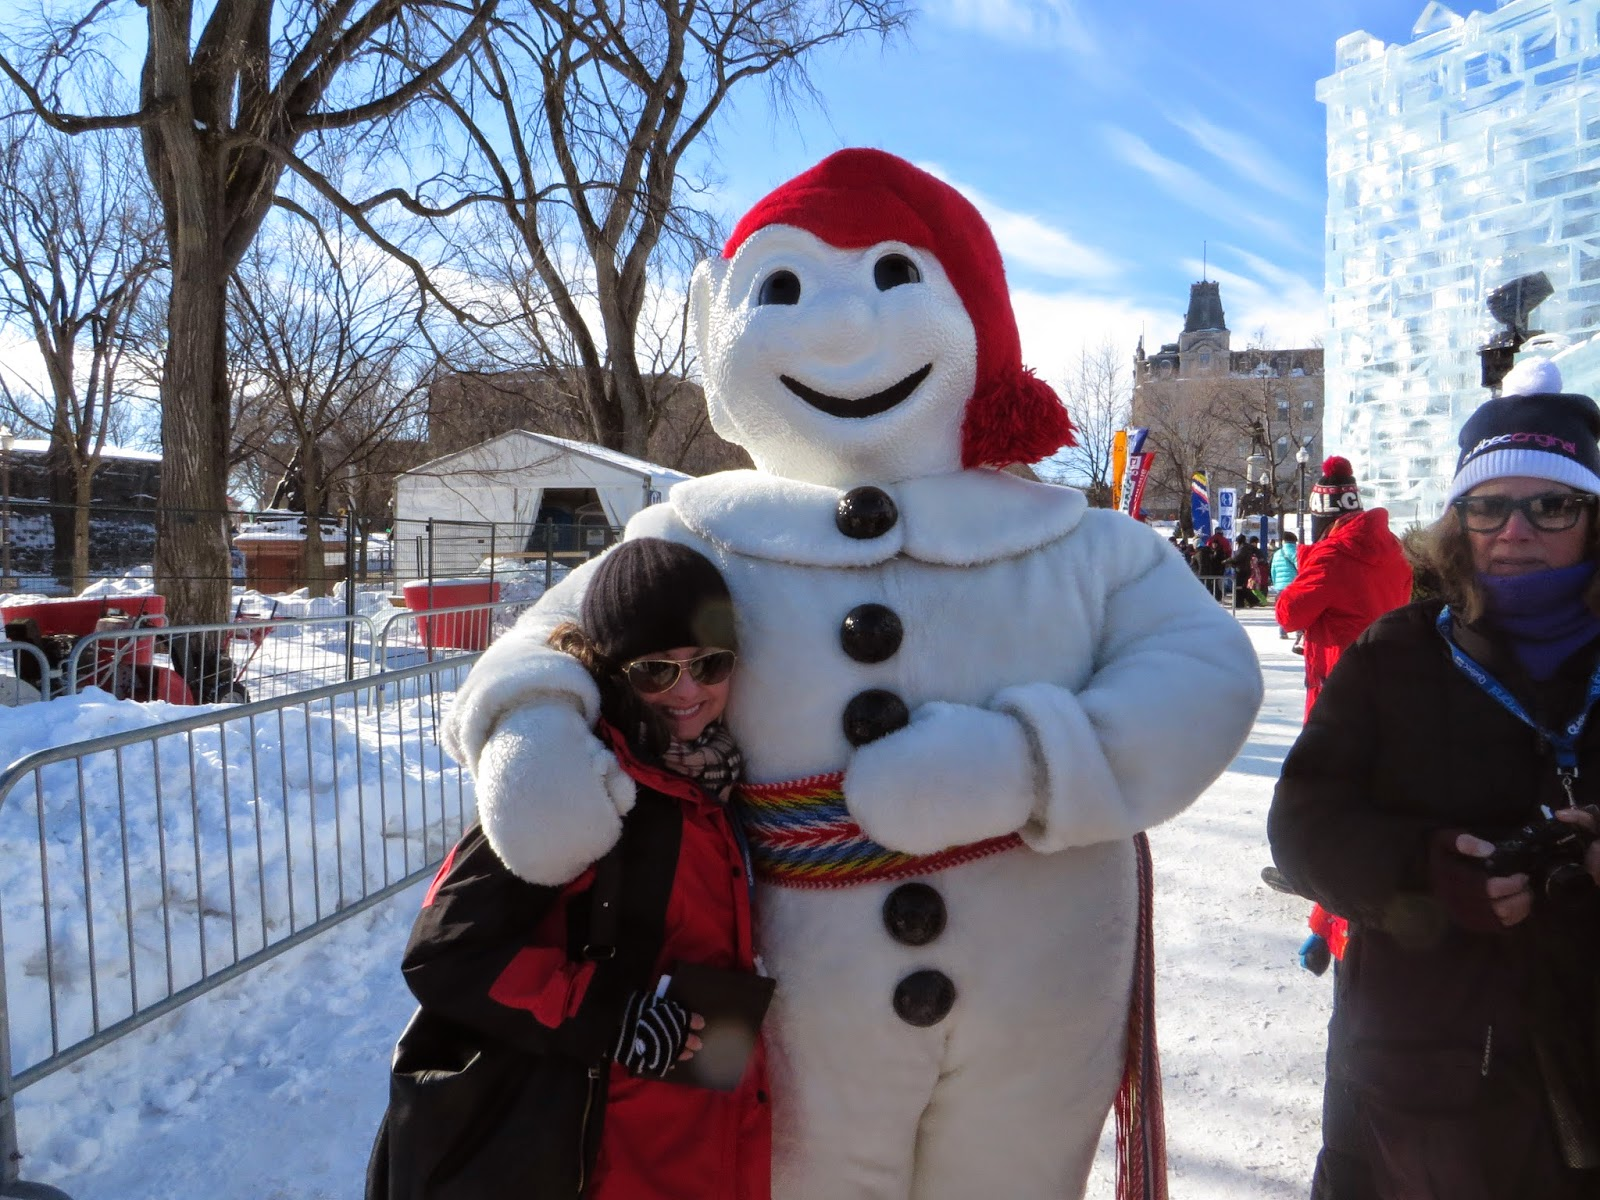 Bonhomme, travel, traveling cynthia, snowman, blog, snow, travel tips, winter, quebec winter, Canada